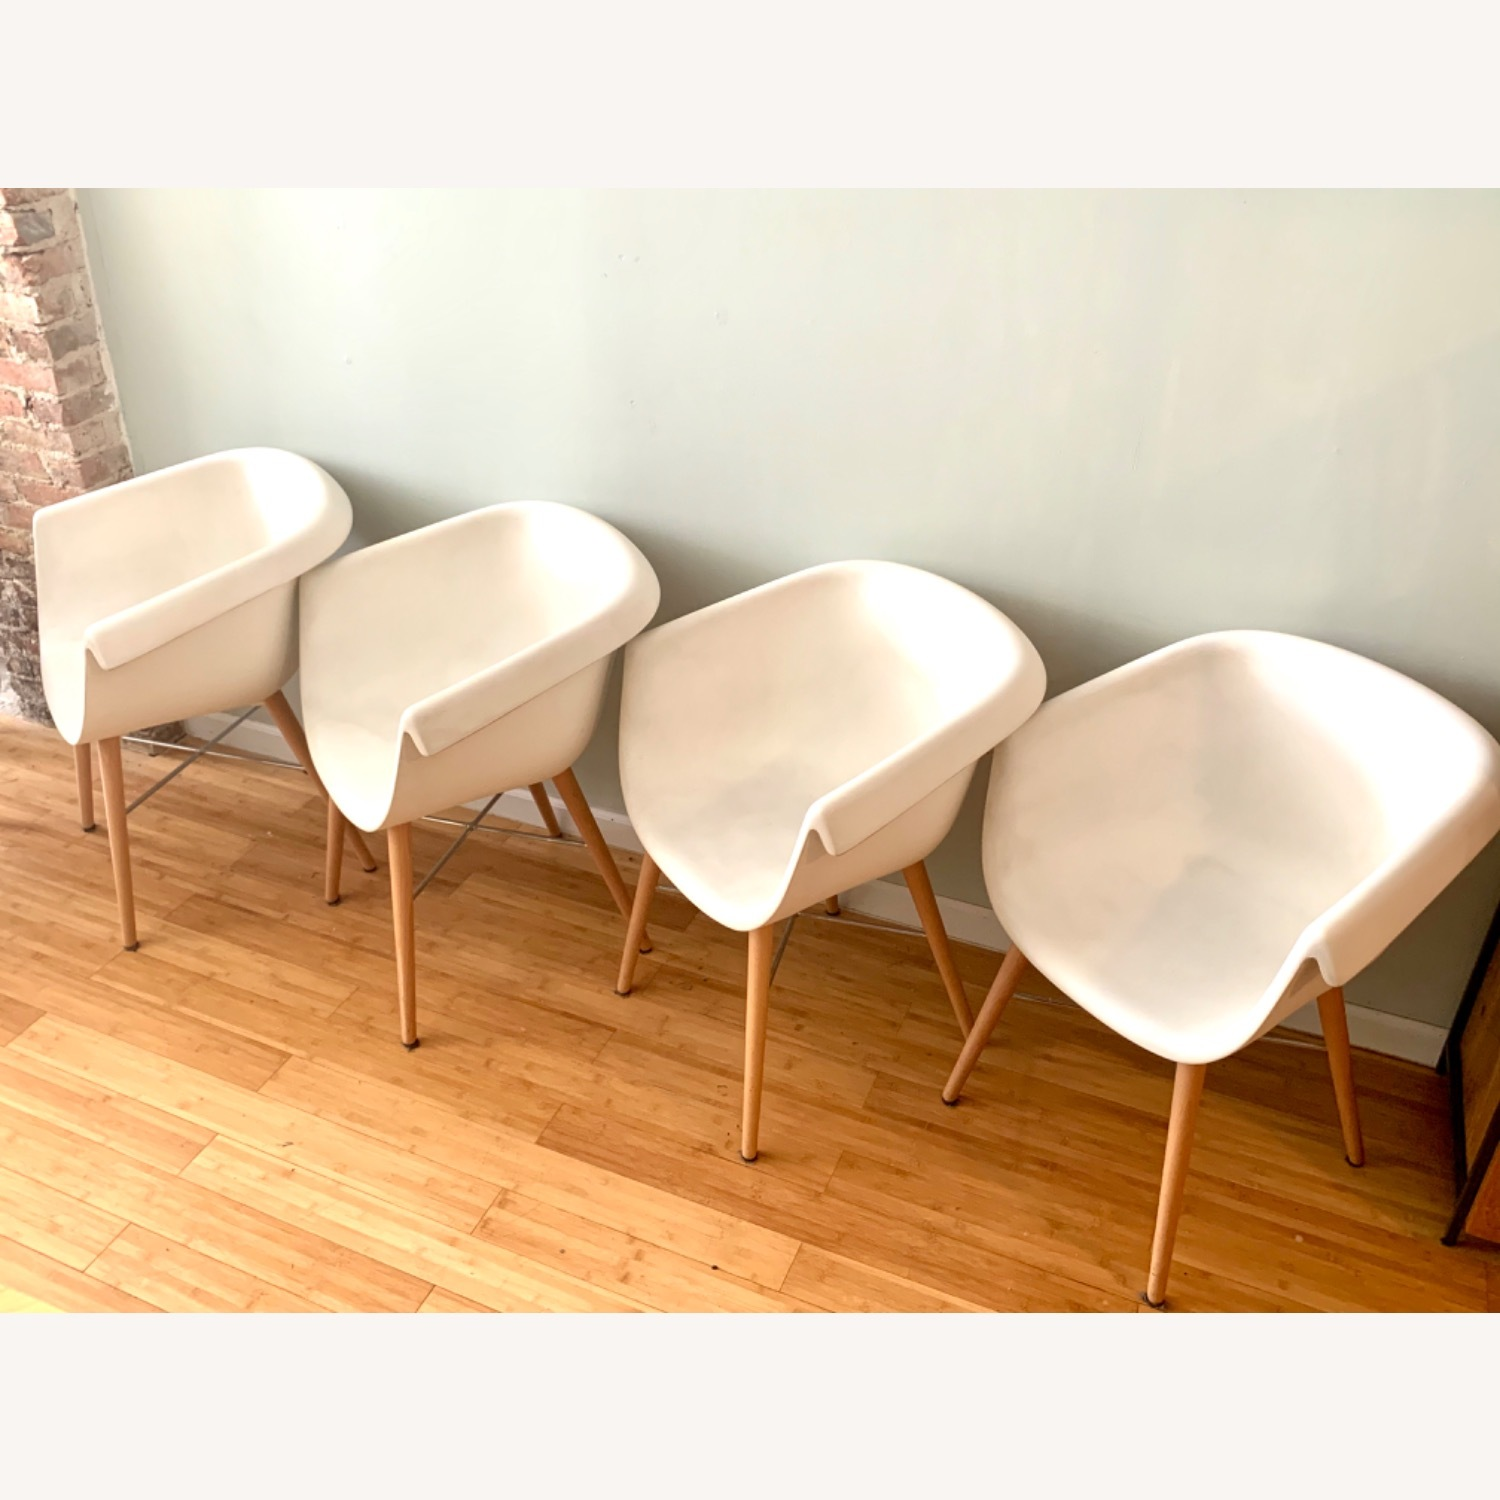 Collier Casprini Dining Chairs by Orlandini - image-1